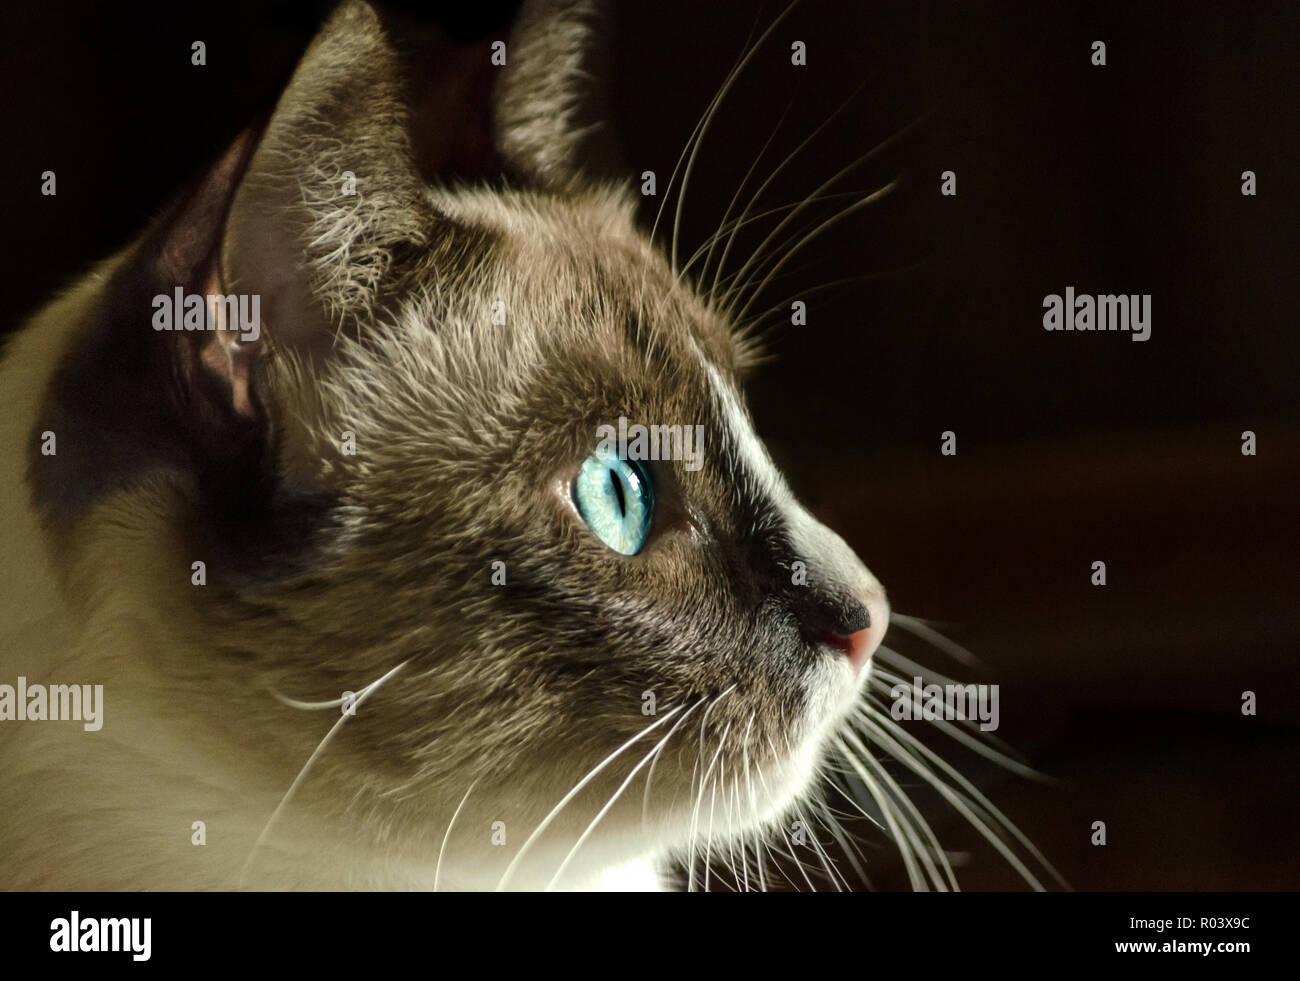 Twinkie, a Siamese kitten, stares out the window in Coden, Alabama, June 19, 2014. - Stock Image